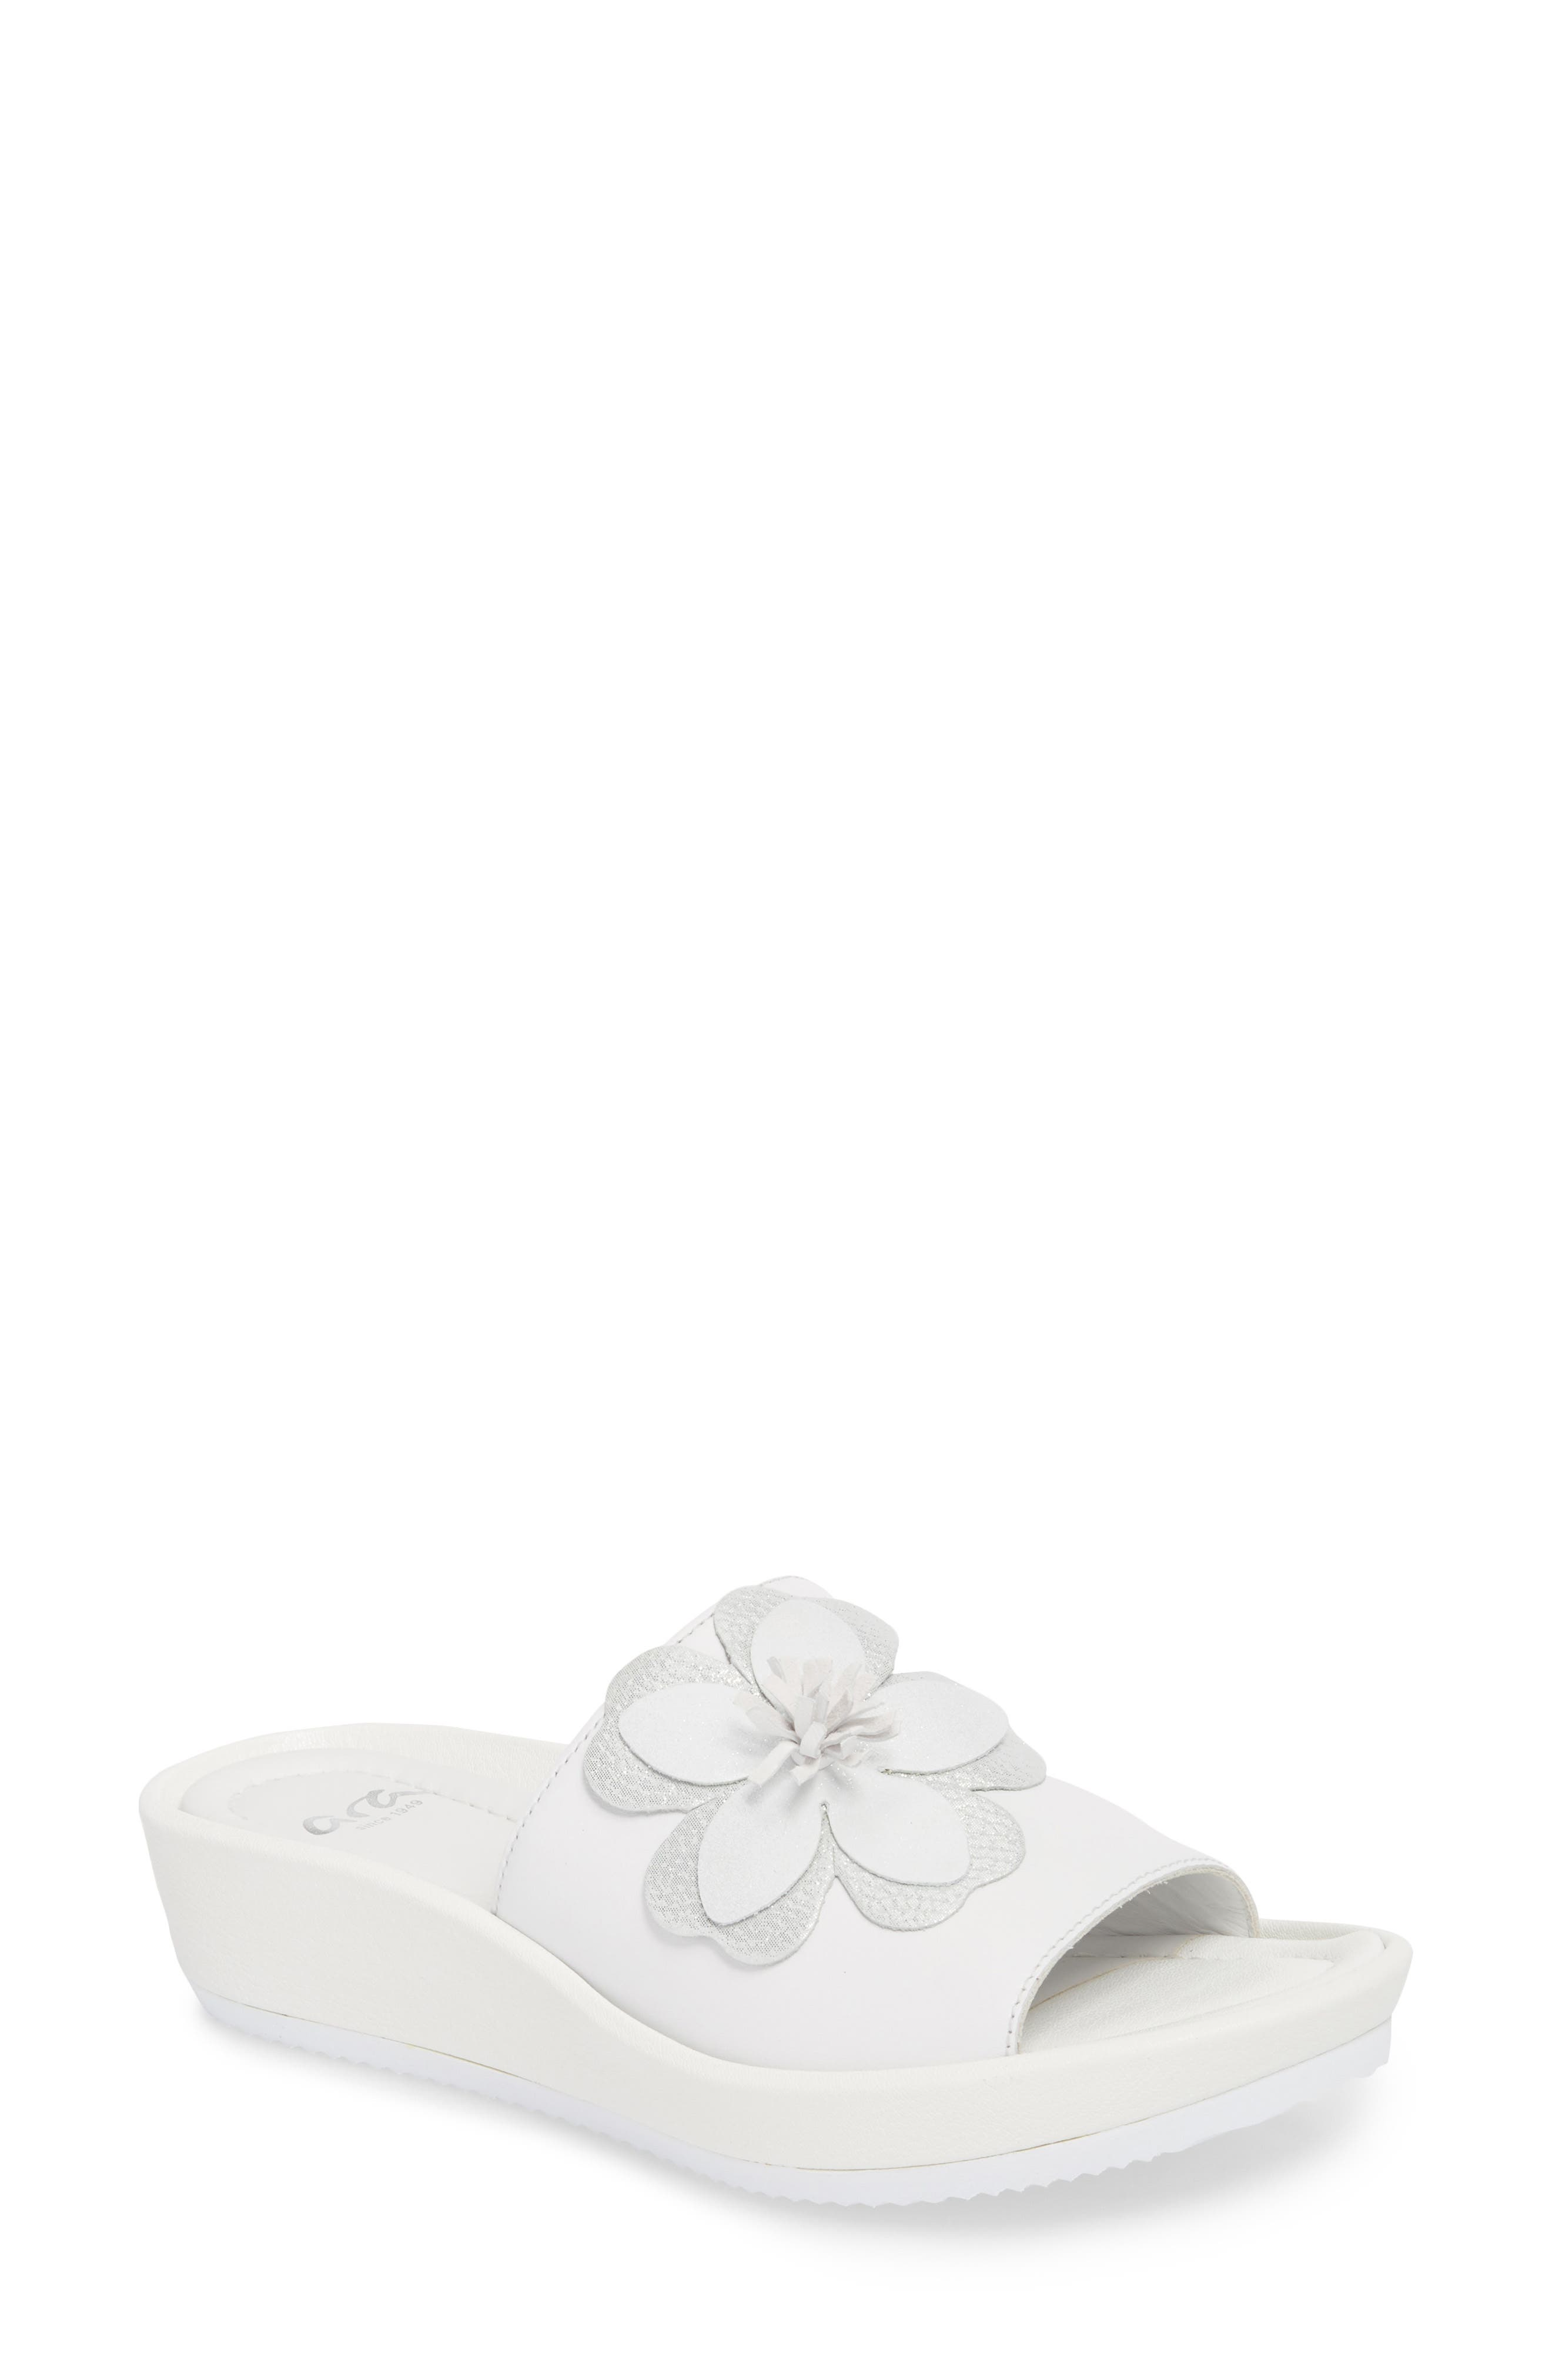 Thea Wedge Slide Sandal,                             Main thumbnail 1, color,                             WHITE LEATHER